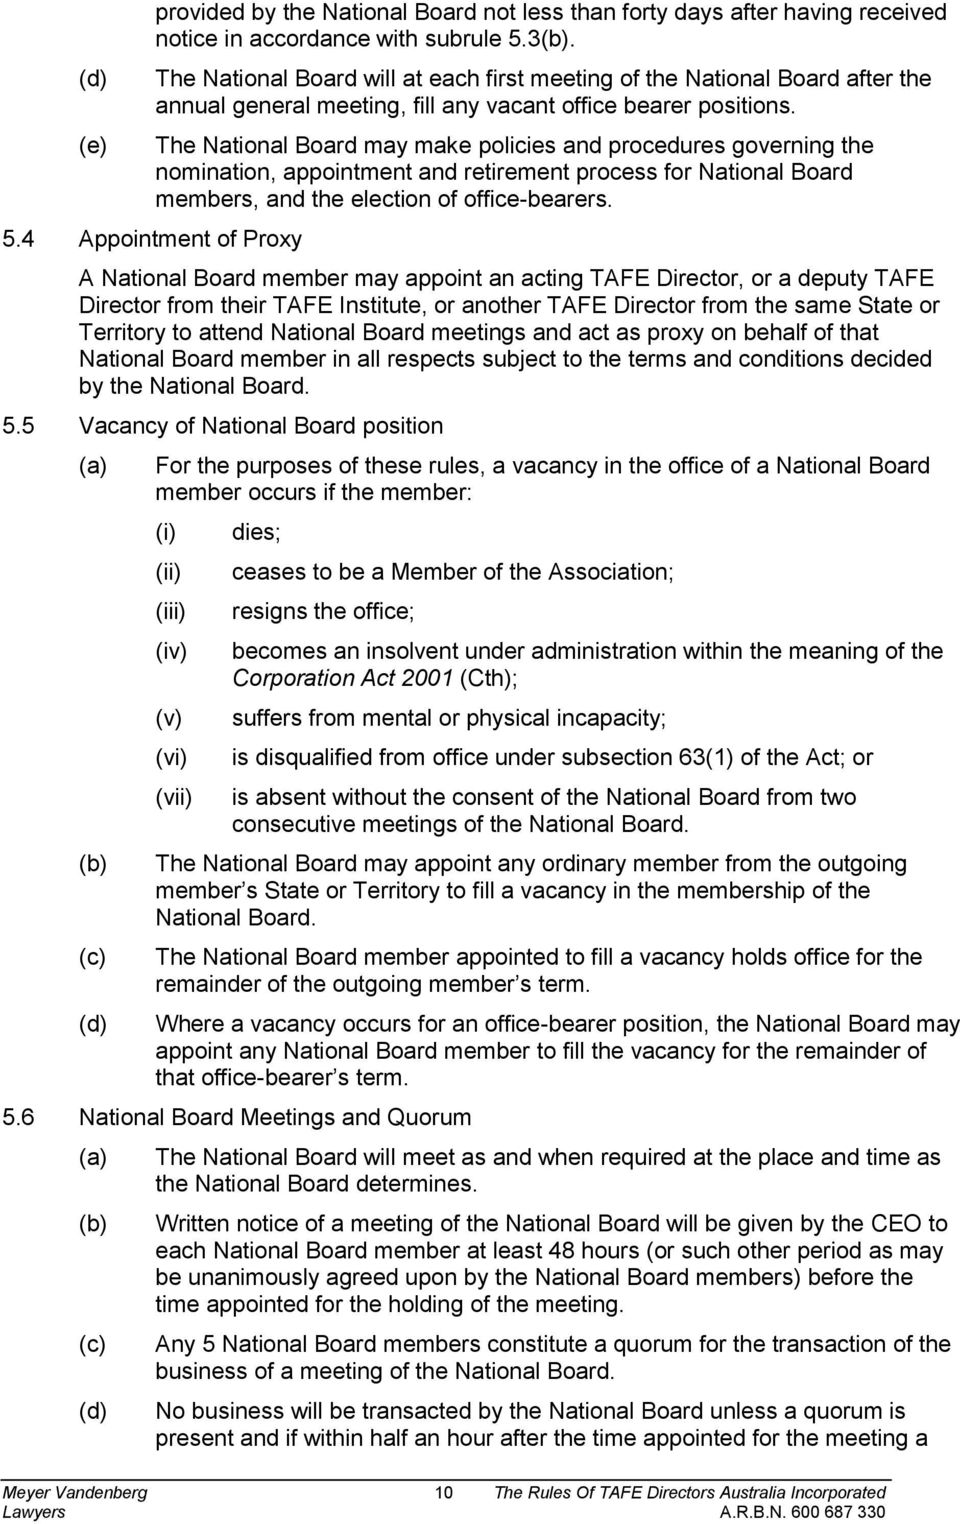 The National Board may make policies and procedures governing the nomination, appointment and retirement process for National Board members, and the election of office-bearers. 5.